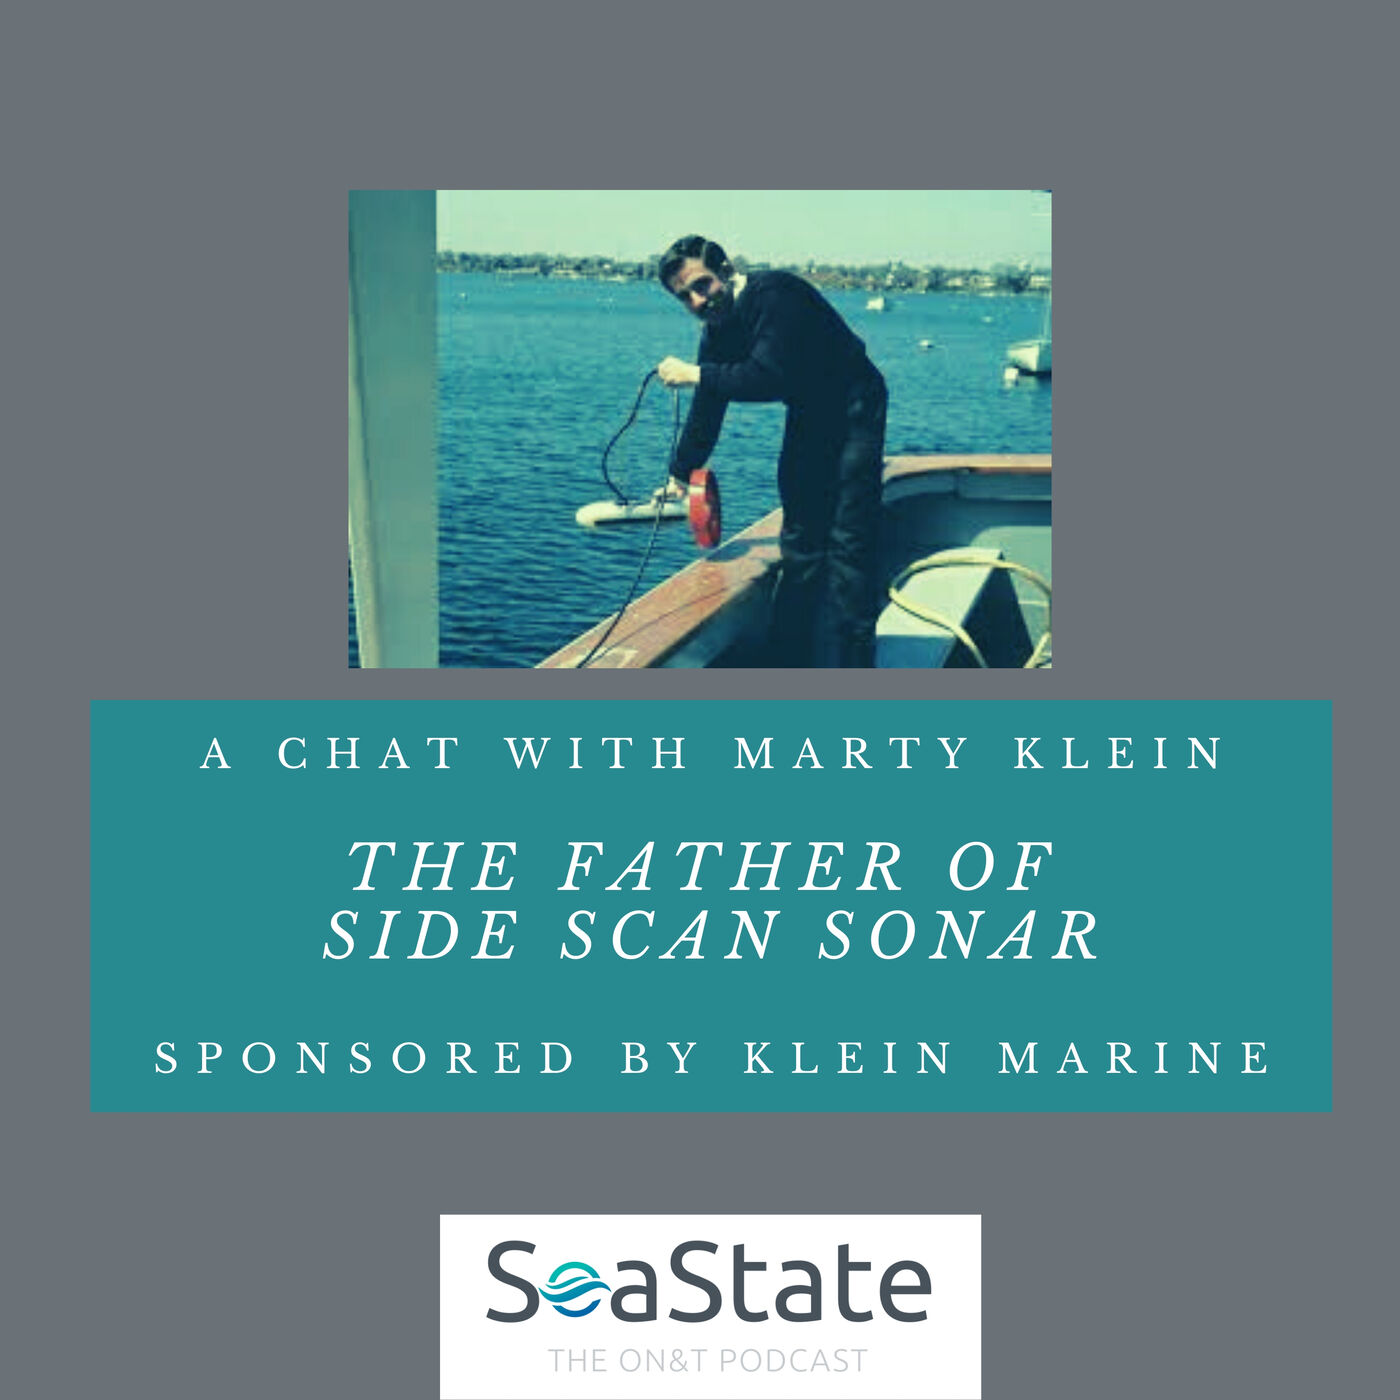 A Chat with Marty Klein: The Father of Side Scan Sonar